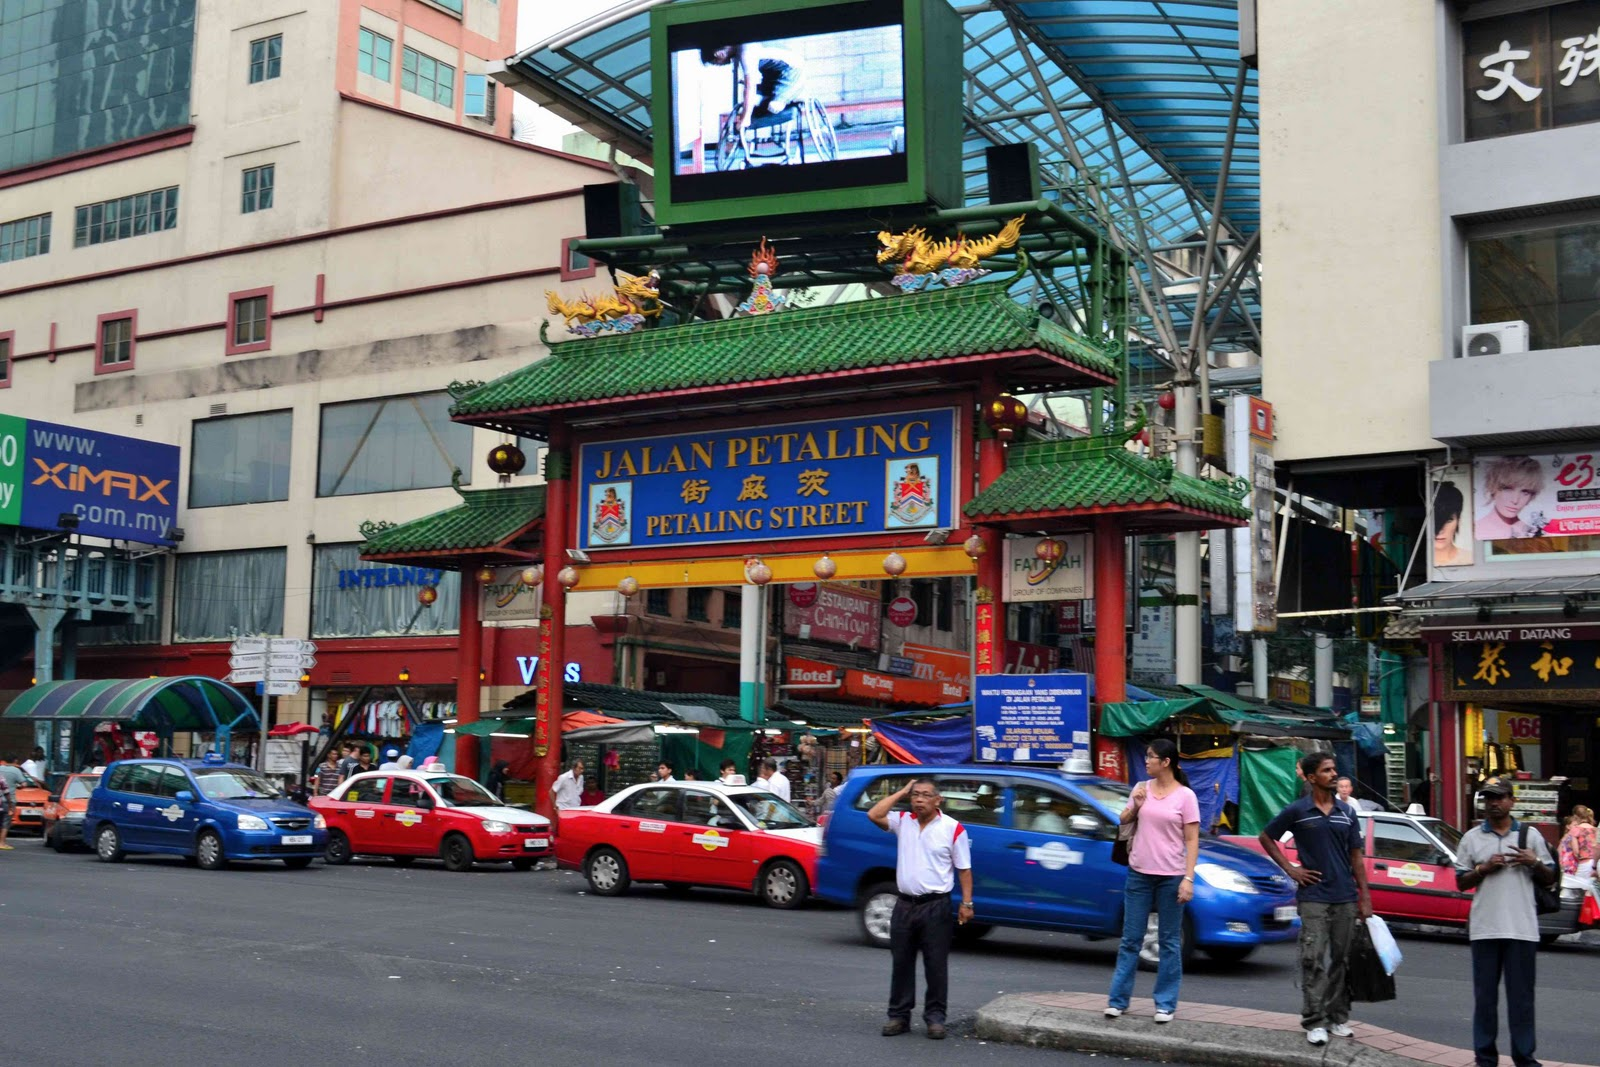 wandering... can't go home: Malaysia - Petaling Street (Chinatown)